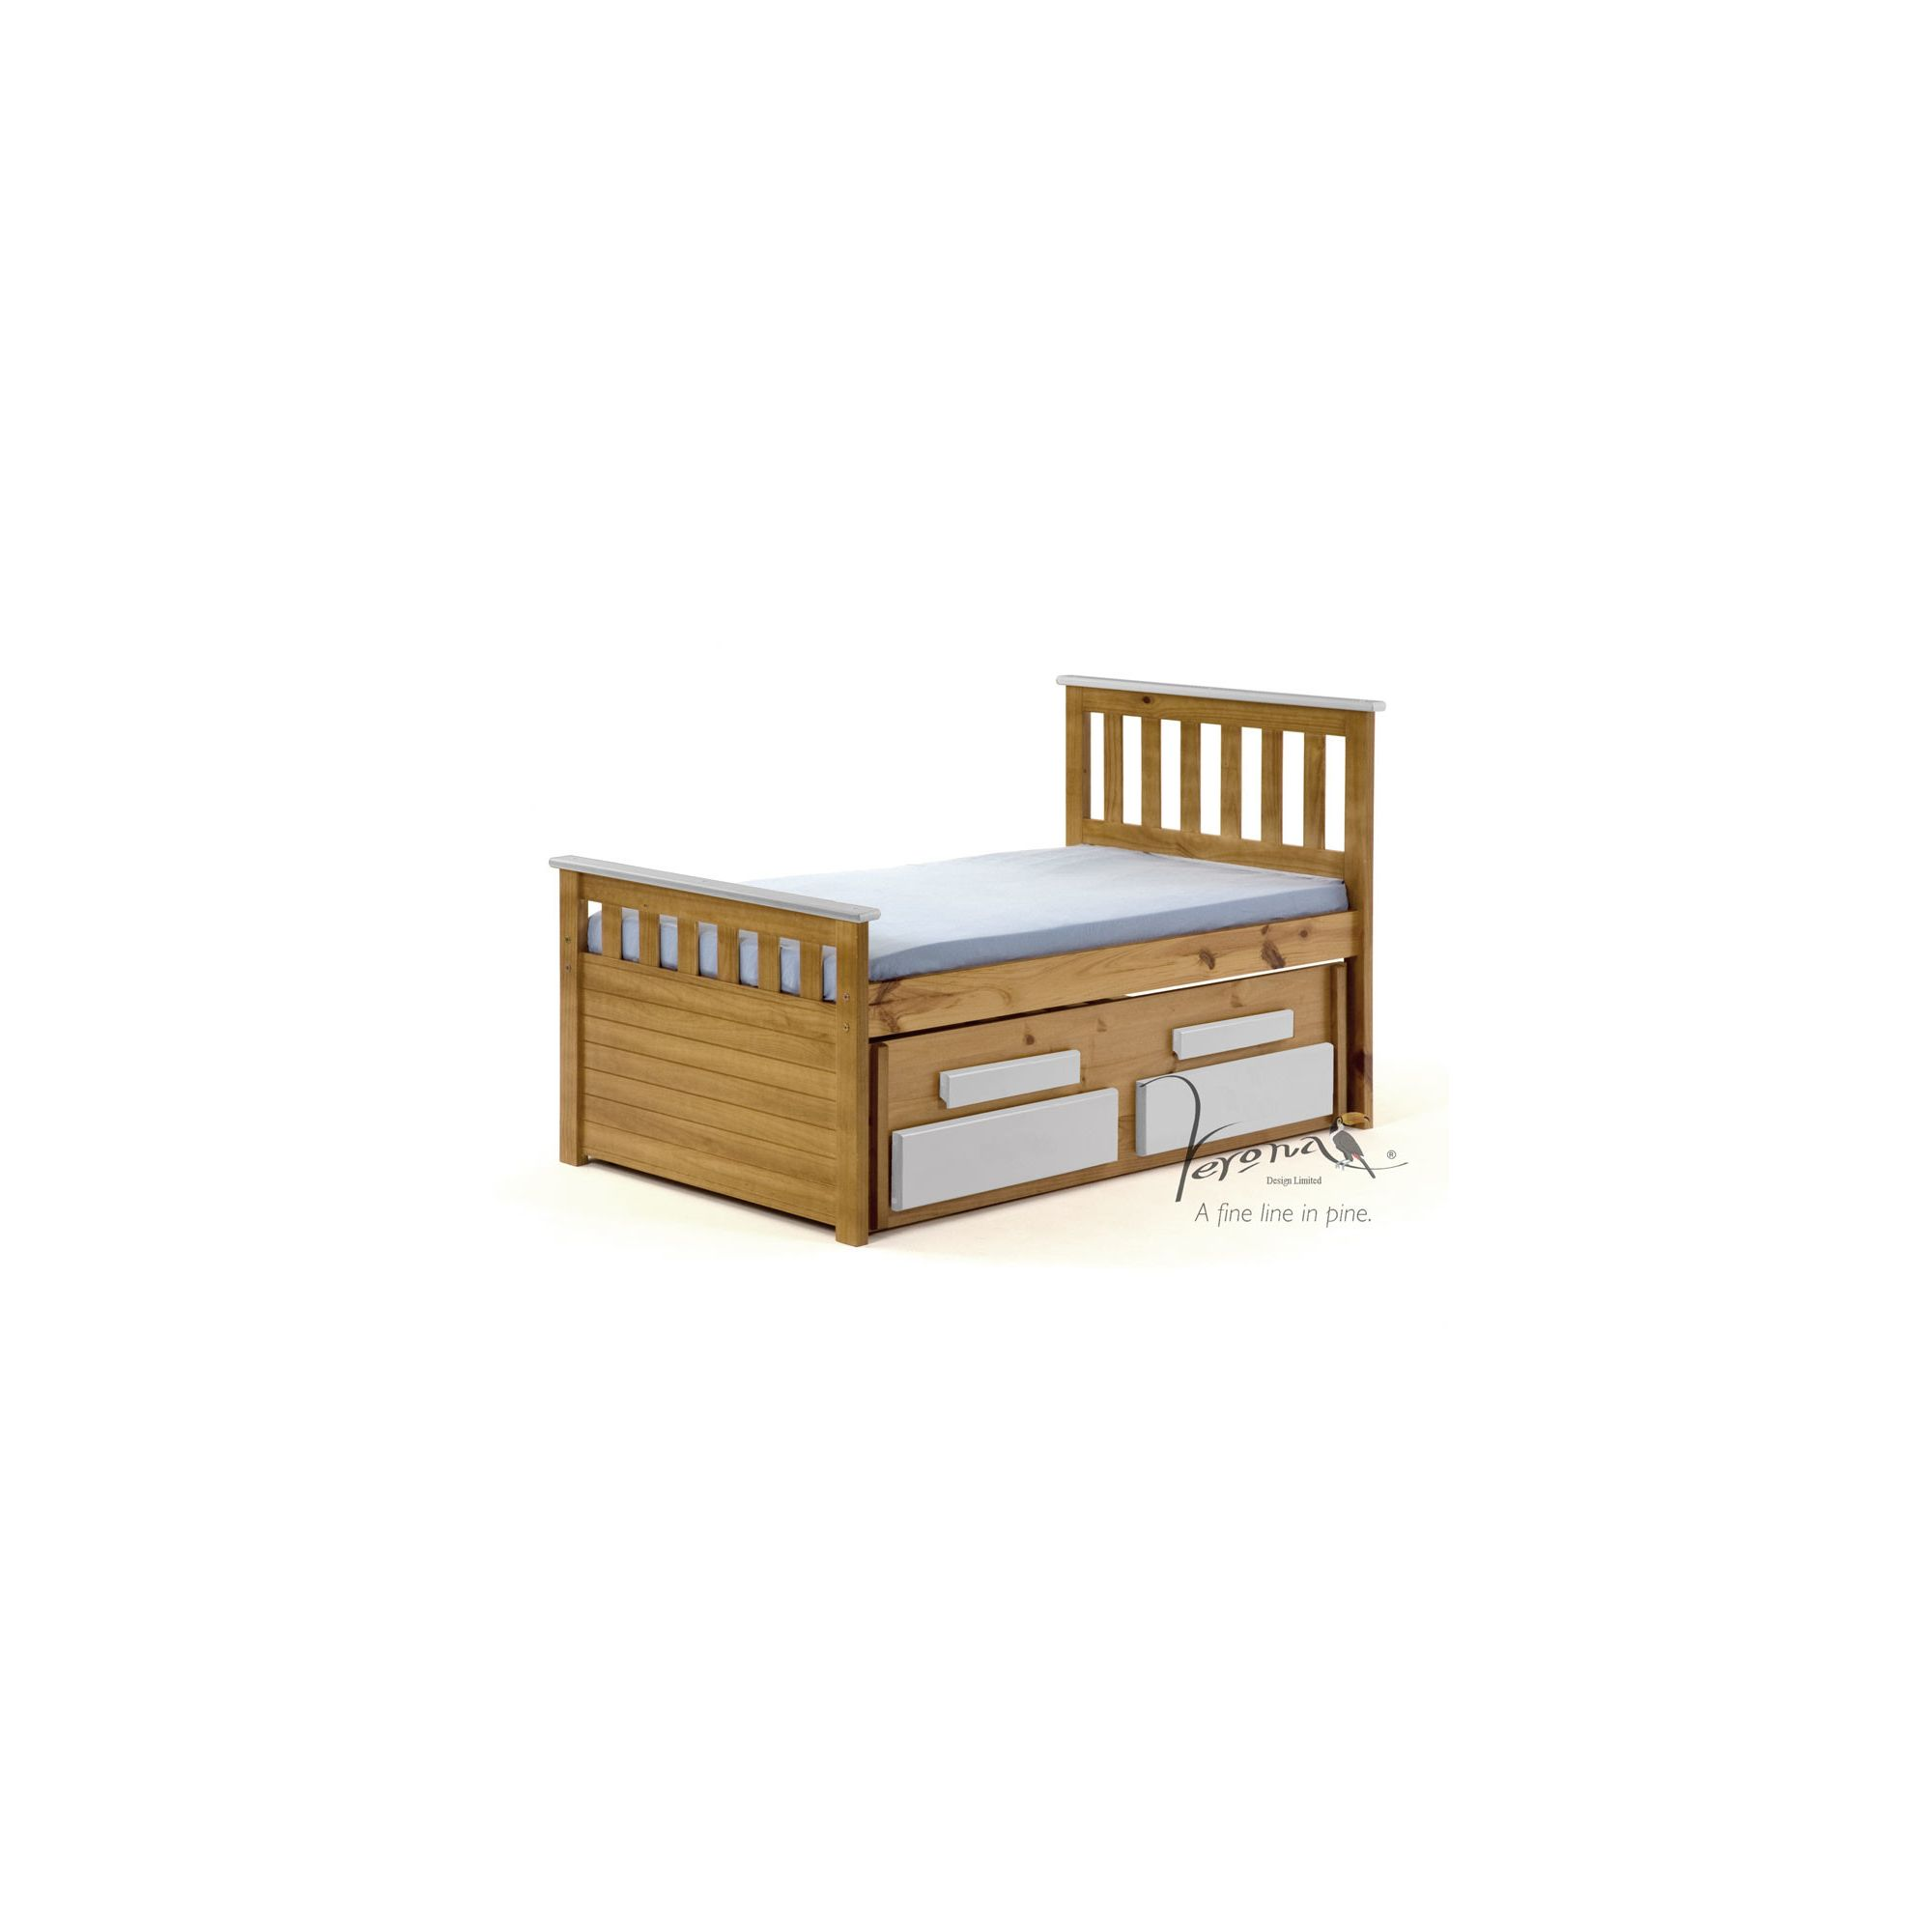 Verona Bergamo Kids Captains Bed with guest bed - Antique White at Tesco Direct